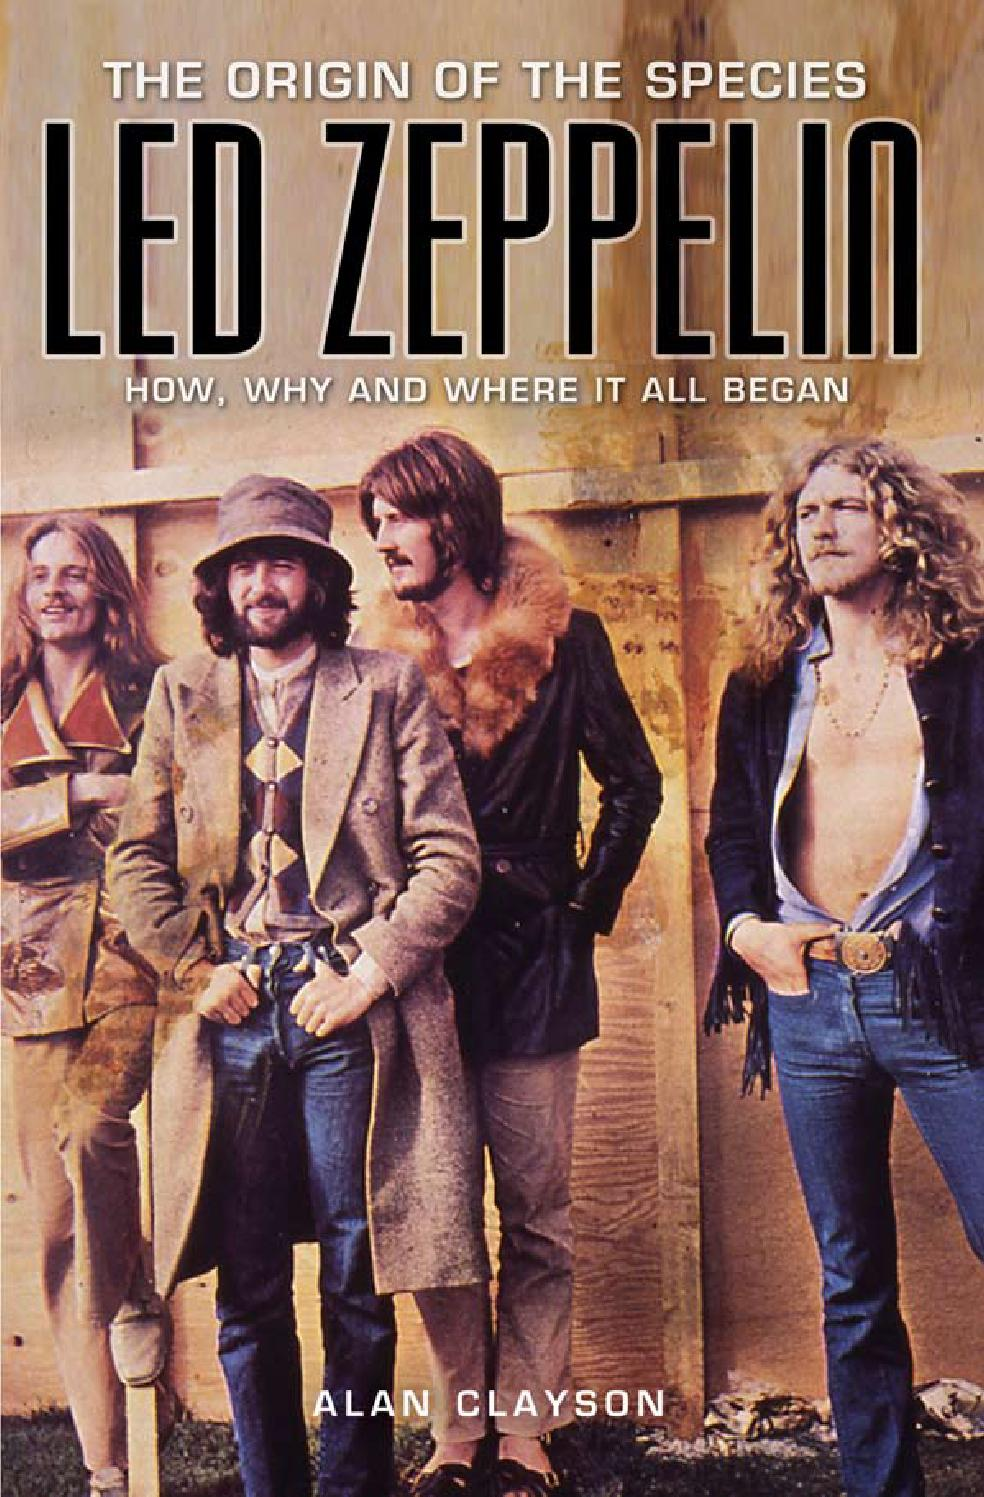 e648772307 Alan clayson led zeppelin the origin of the species how, why, and where it  all began (2006) by Jose Carlos Botto Cayo - issuu